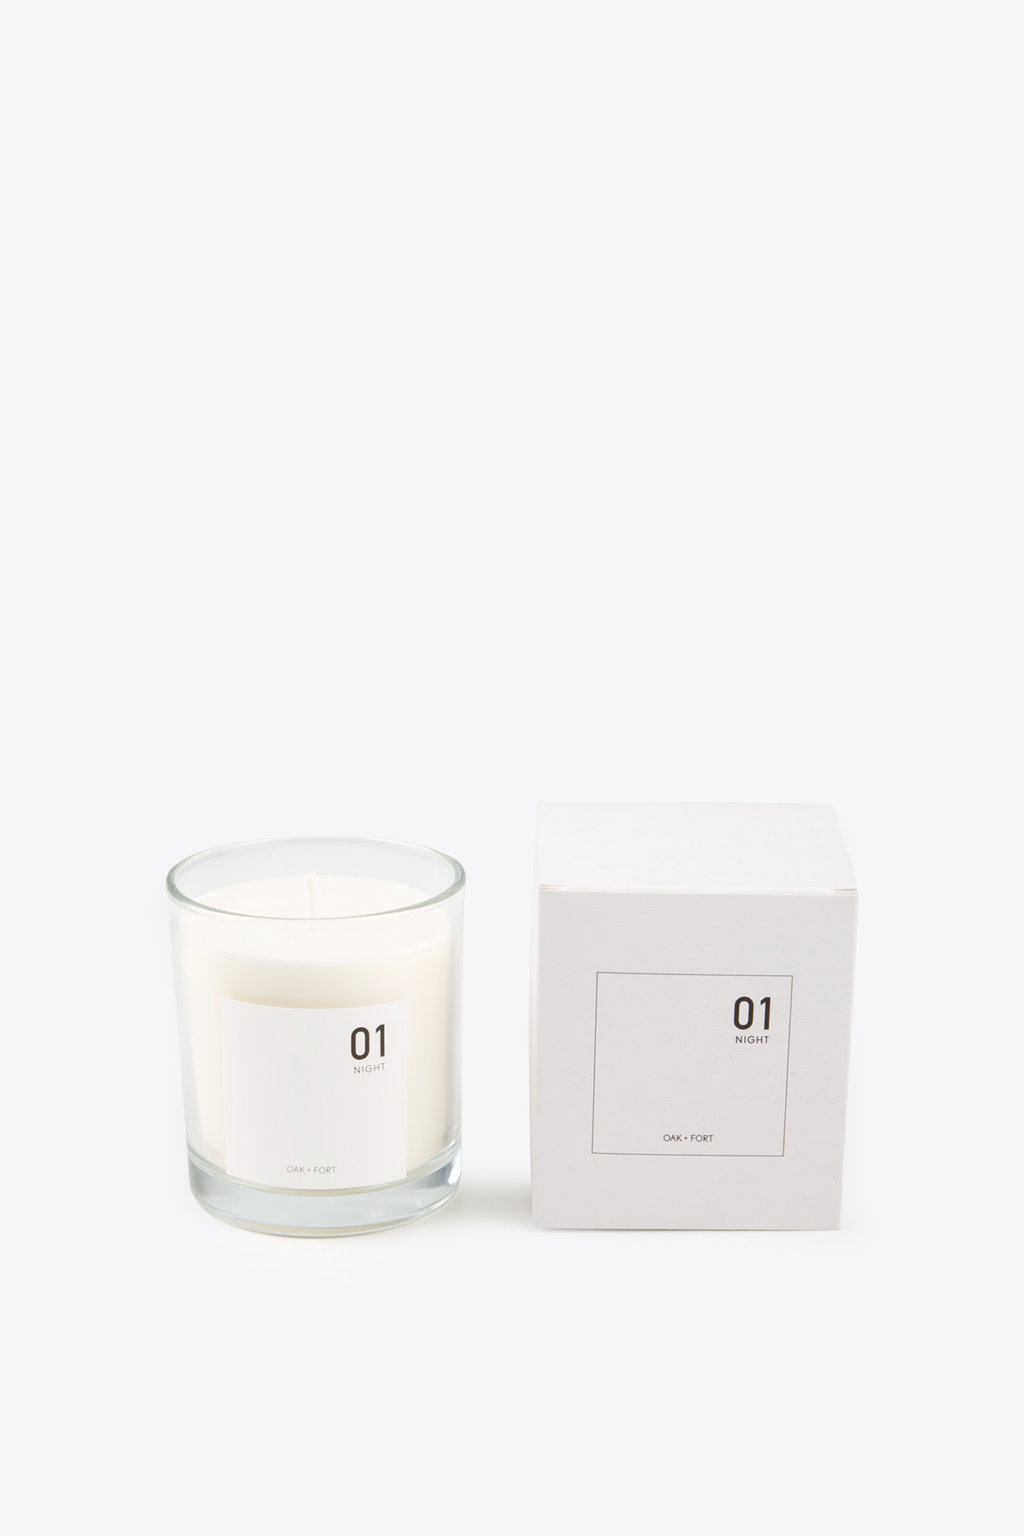 01 Night Candle 1035 White 1